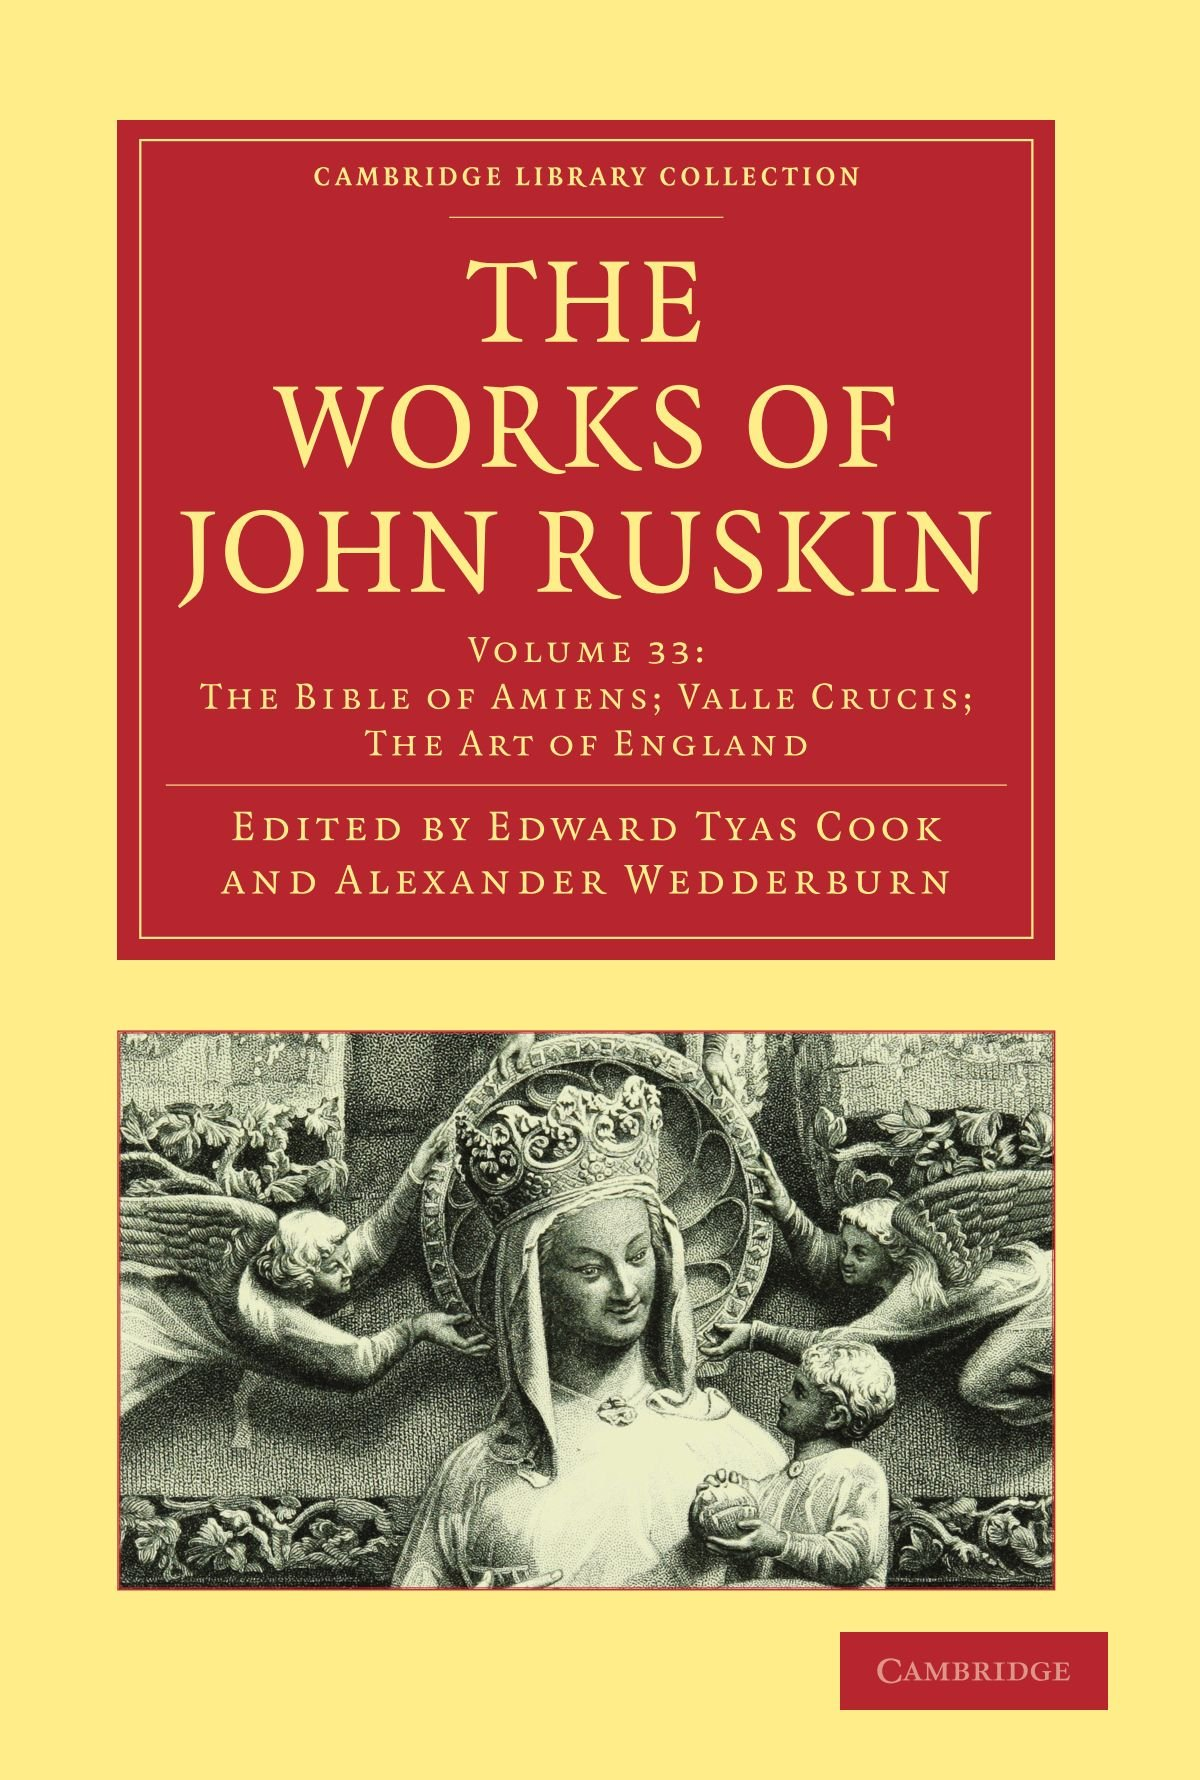 The Works Of John Ruskin 39 Volume Paperback Set  The Works Of John Ruskin  Cambridge Library Collection   Literary Studies   Volume 33   Cambridge Library Collection   Works Of John Ruskin